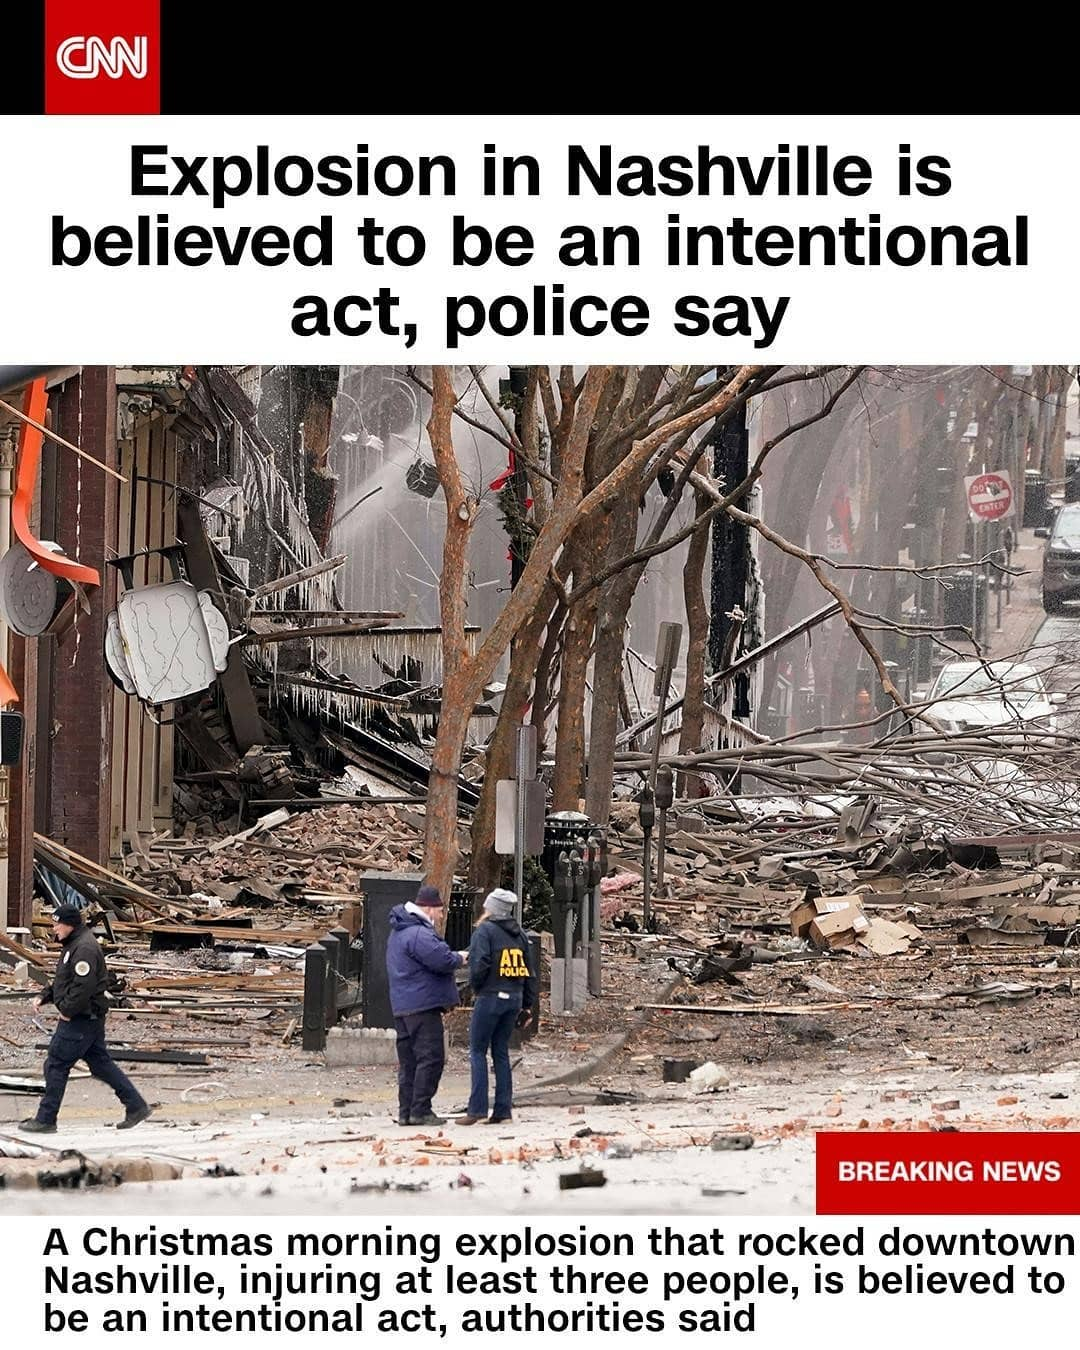 """Three people were transported to hospitals following an explosion Friday morning in downtown Nashville, which authorities believe was an intentional act. """"Significant damage has been done to the infrastructure there on 2nd Avenue North,"""" said police spokesman Don Aaron. The FBI told CNN that its field office in Memphis is taking over the investigation. Tap the link in our bio for more on this breaking story. """